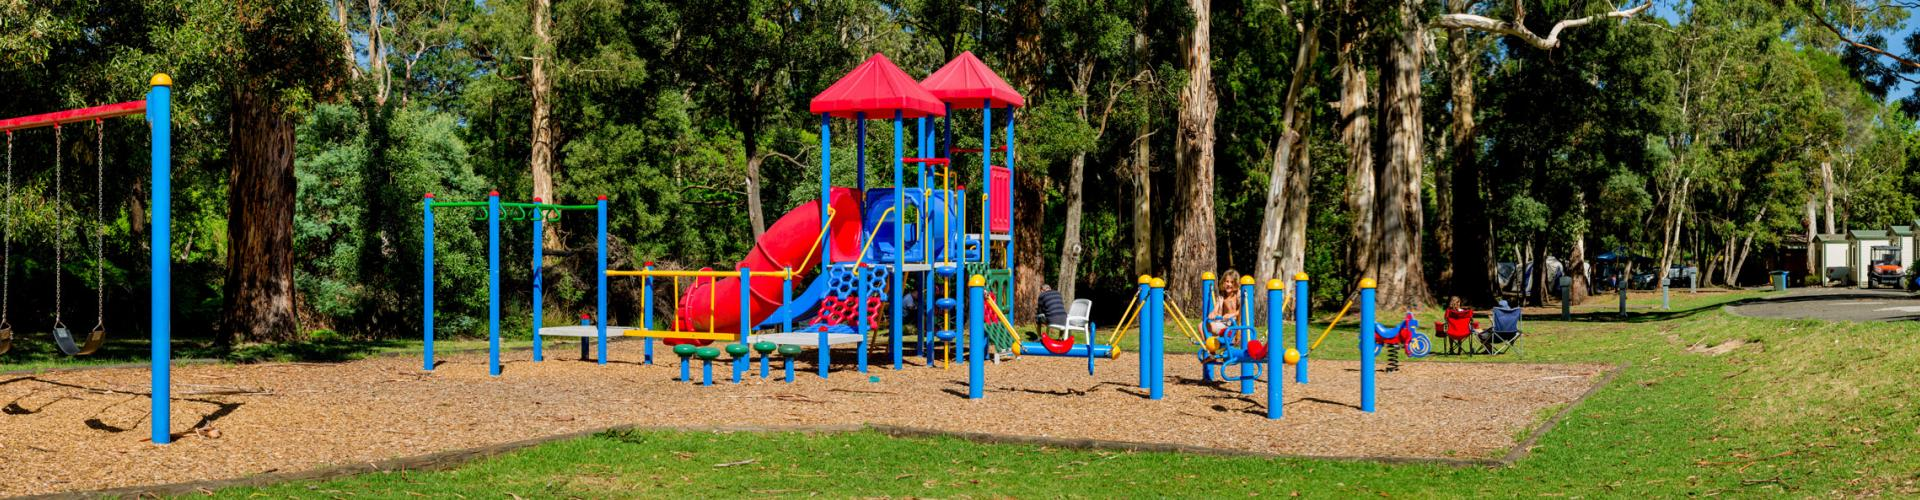 BIG4 Yarra Valley Park Lane Holiday Park - Outdoor Playground Panoramic View